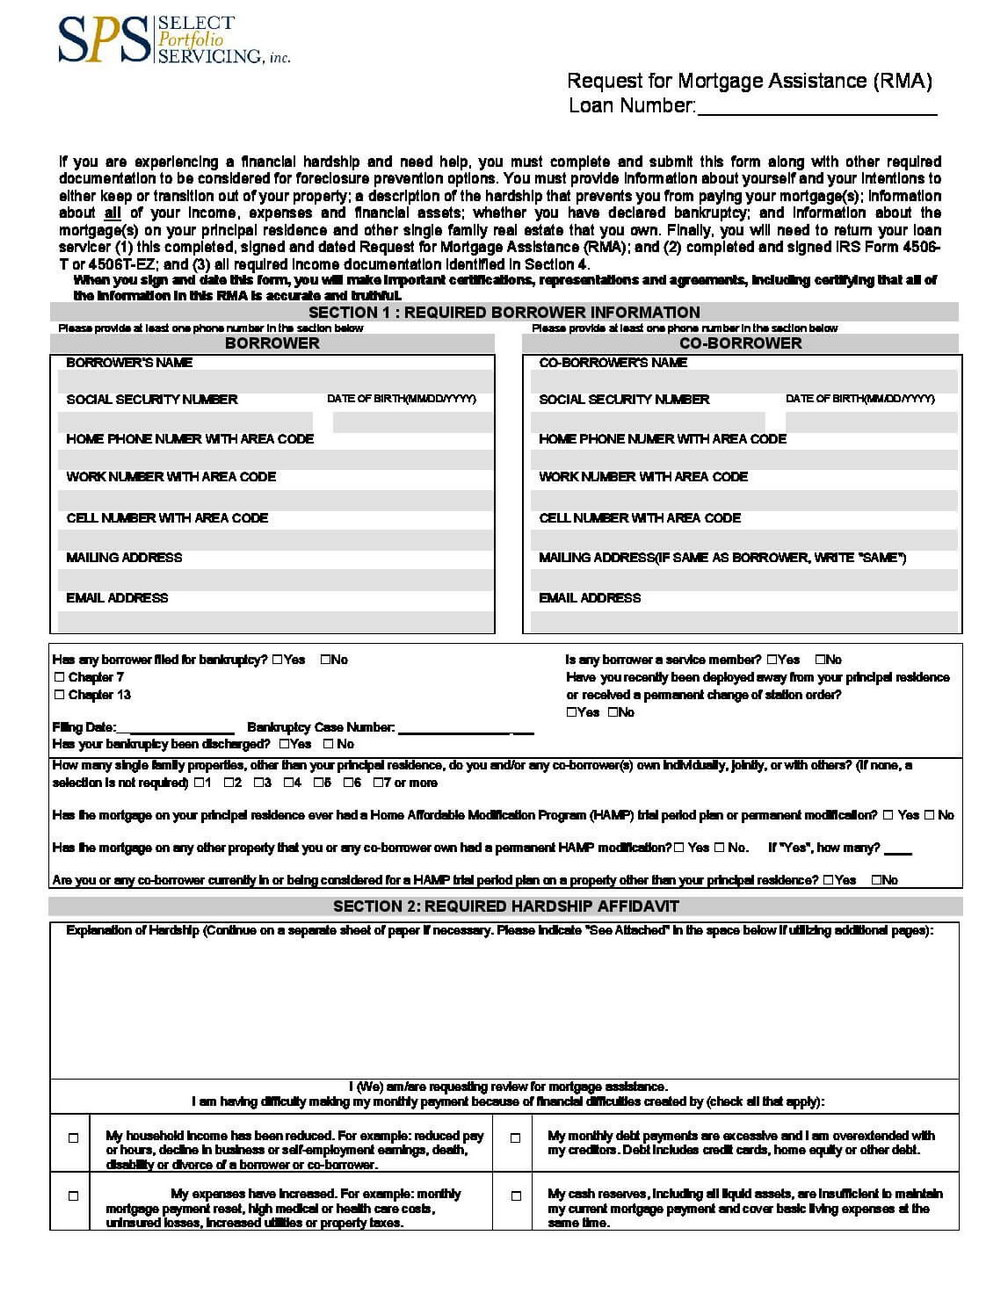 Ocwen Loan Modification Forms